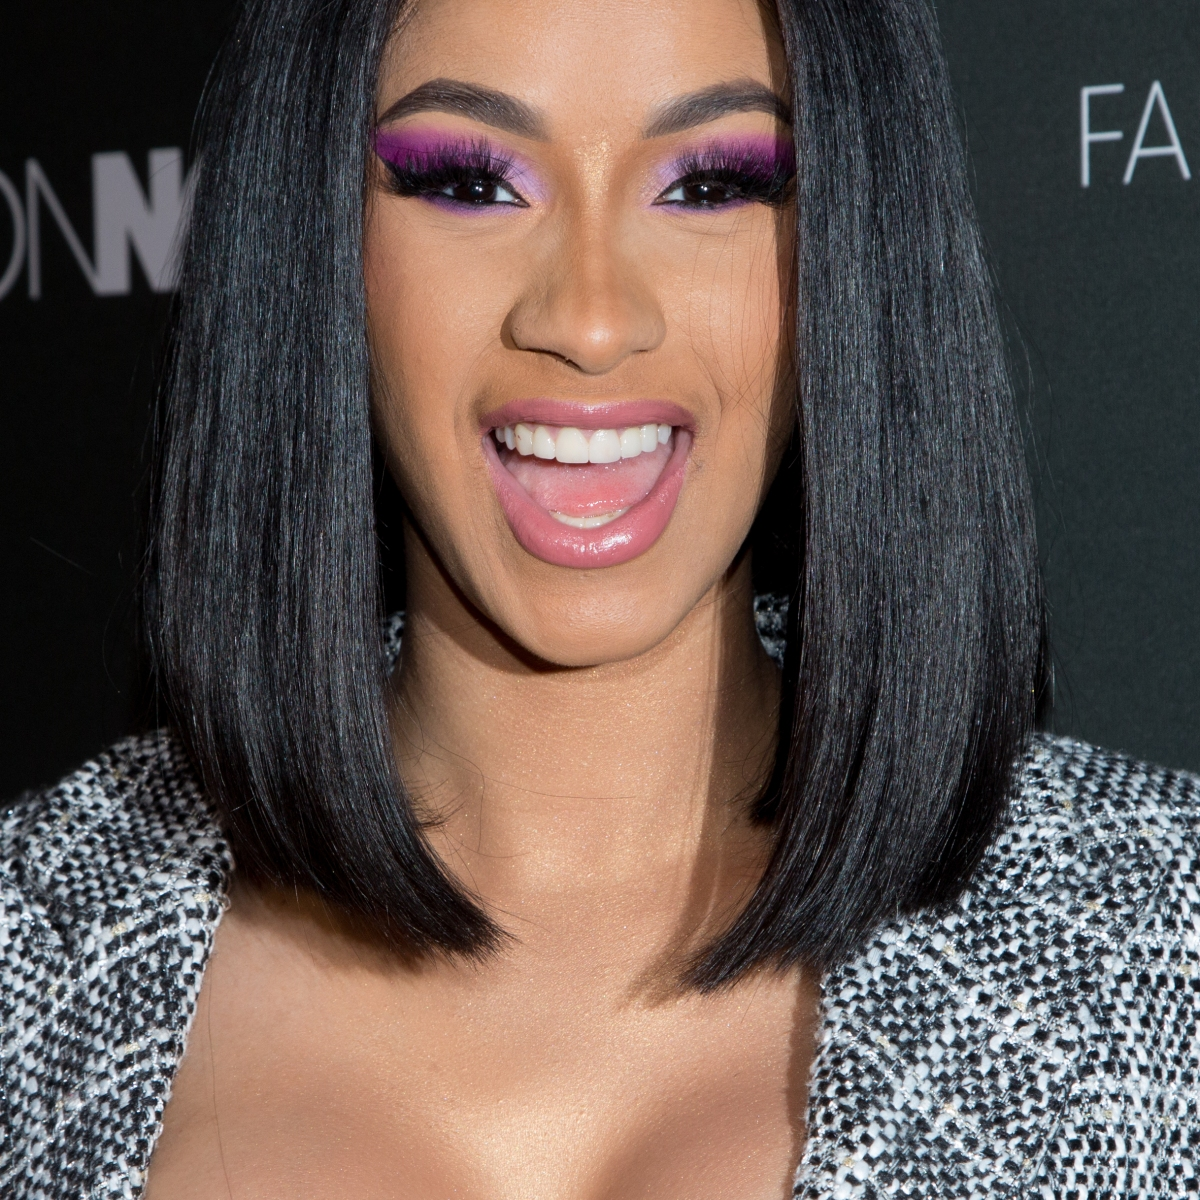 Cardi B S Fashion Nova Launch Party Outfit Is All Sorts Of Amazing